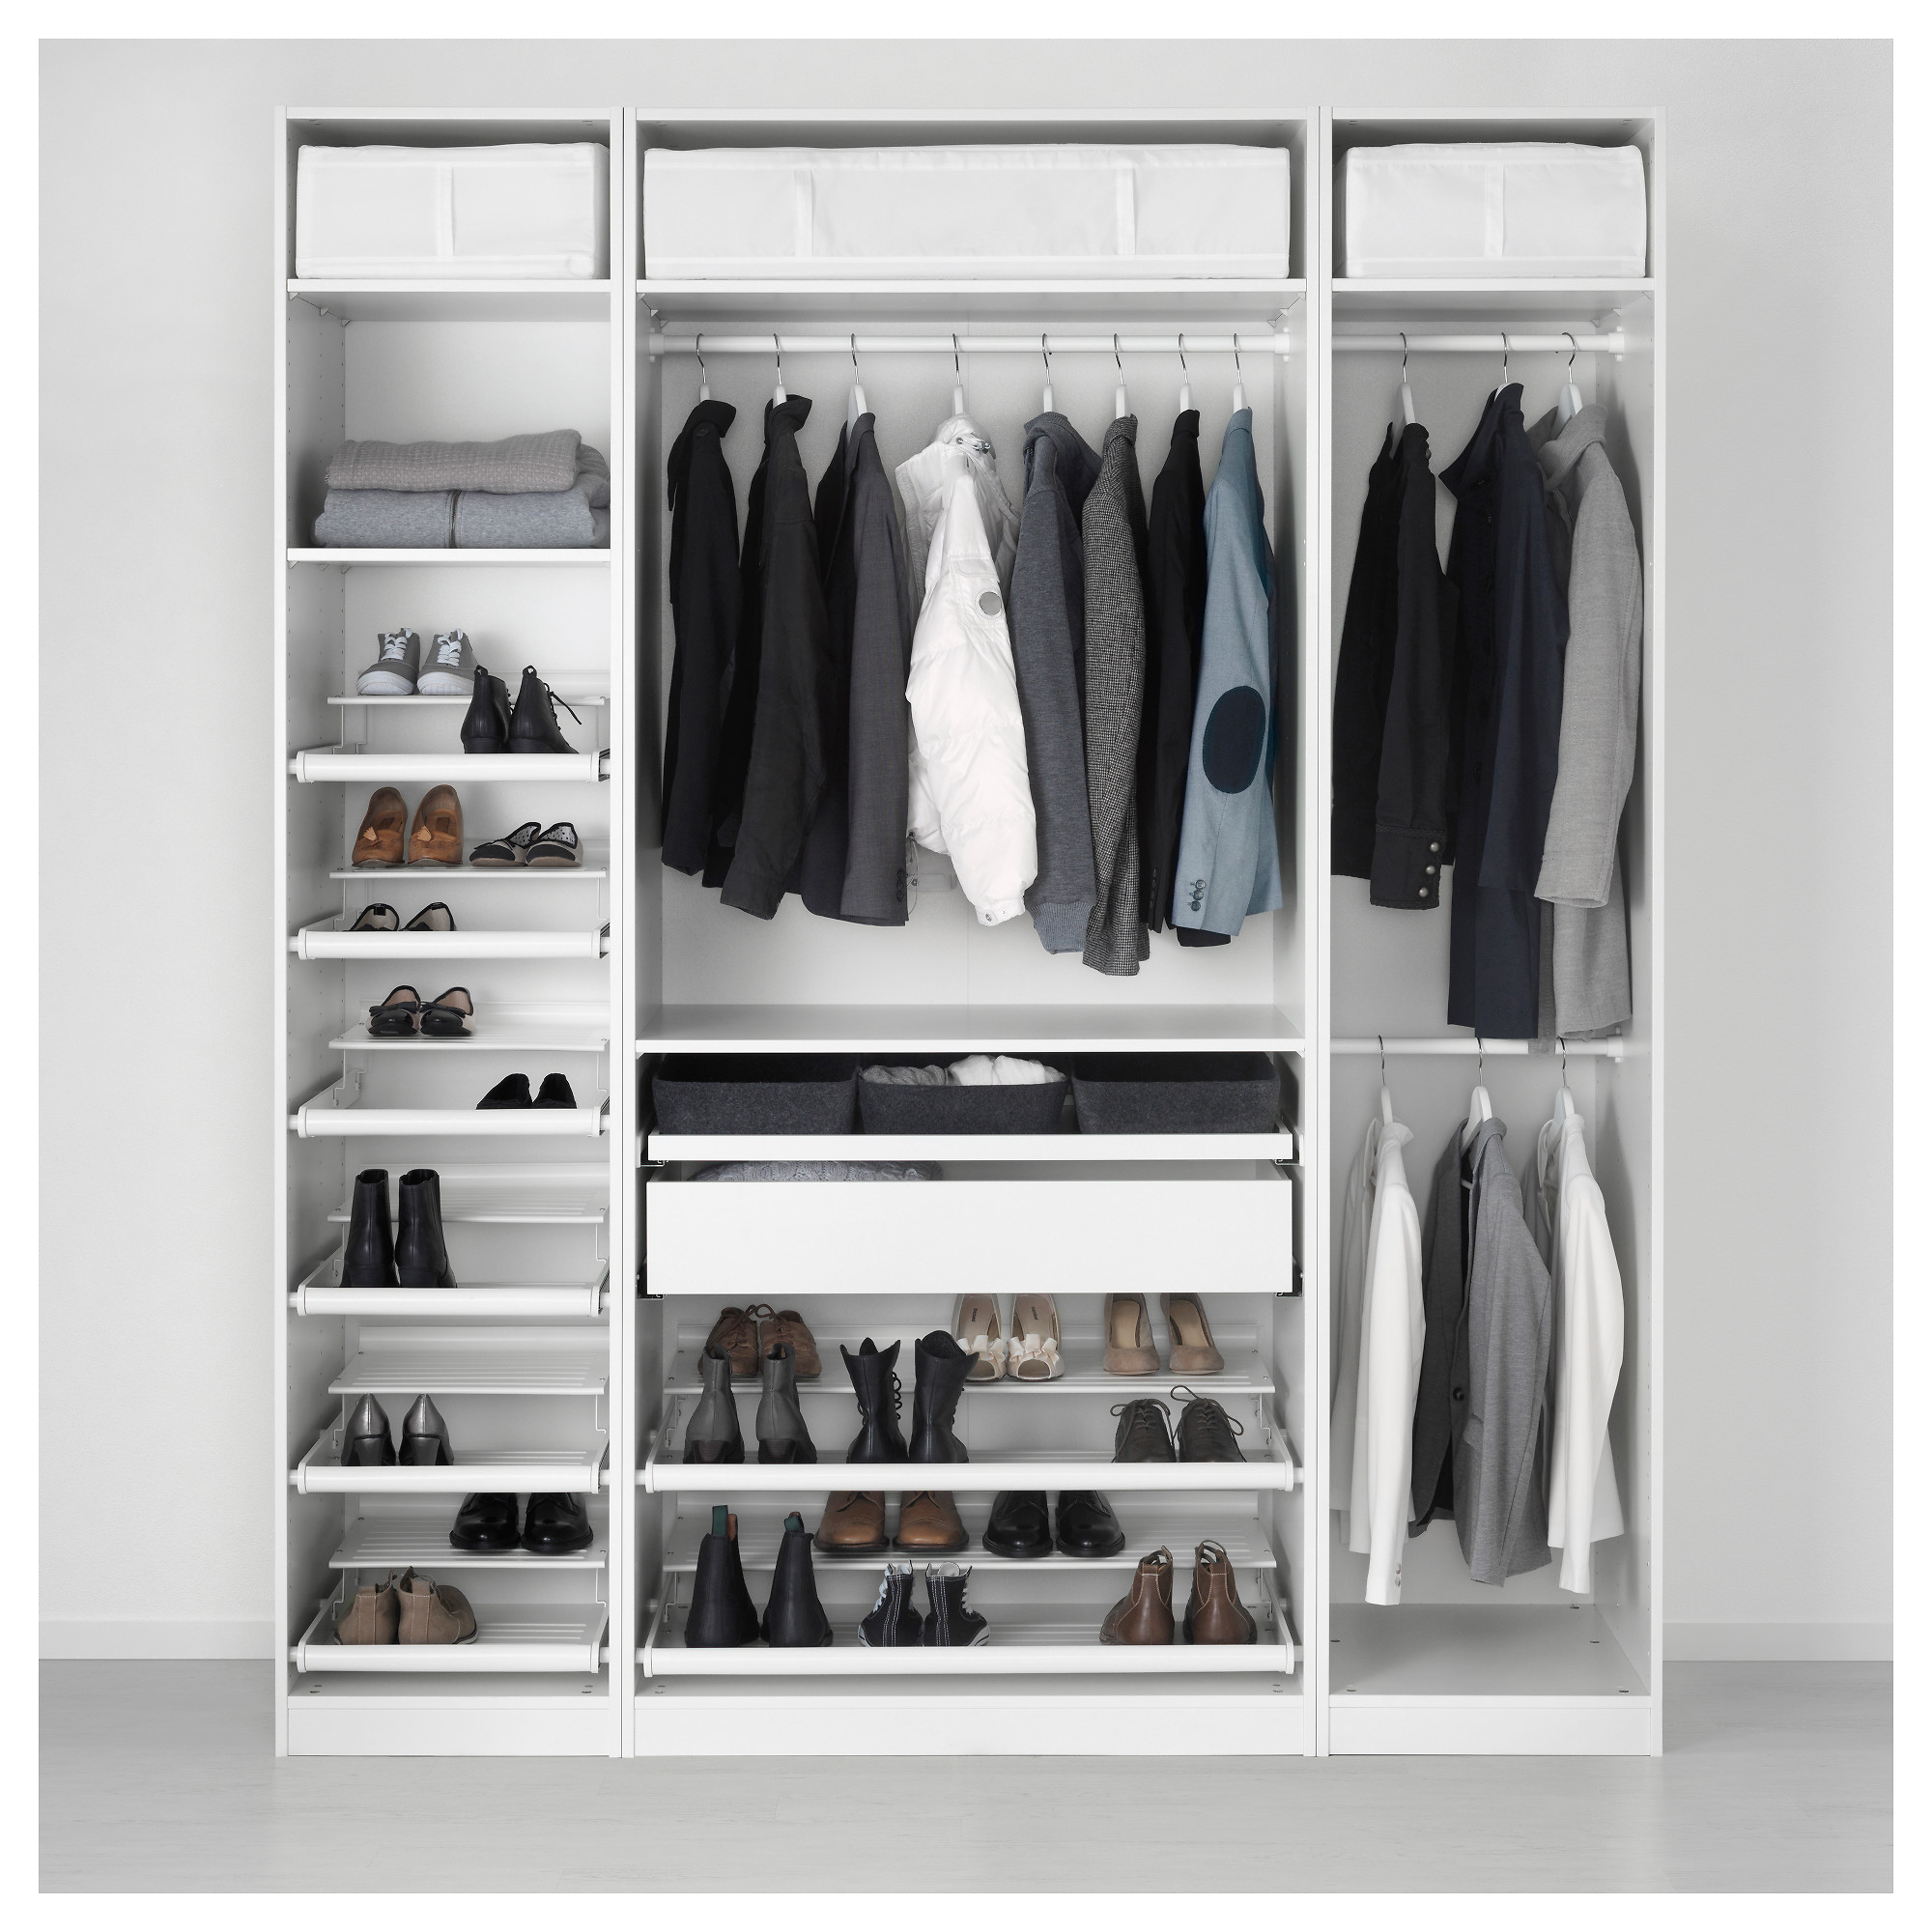 Eck Garderobe Ikea. Cool Large Size Of Wandregal Cm Ikea Fr ...